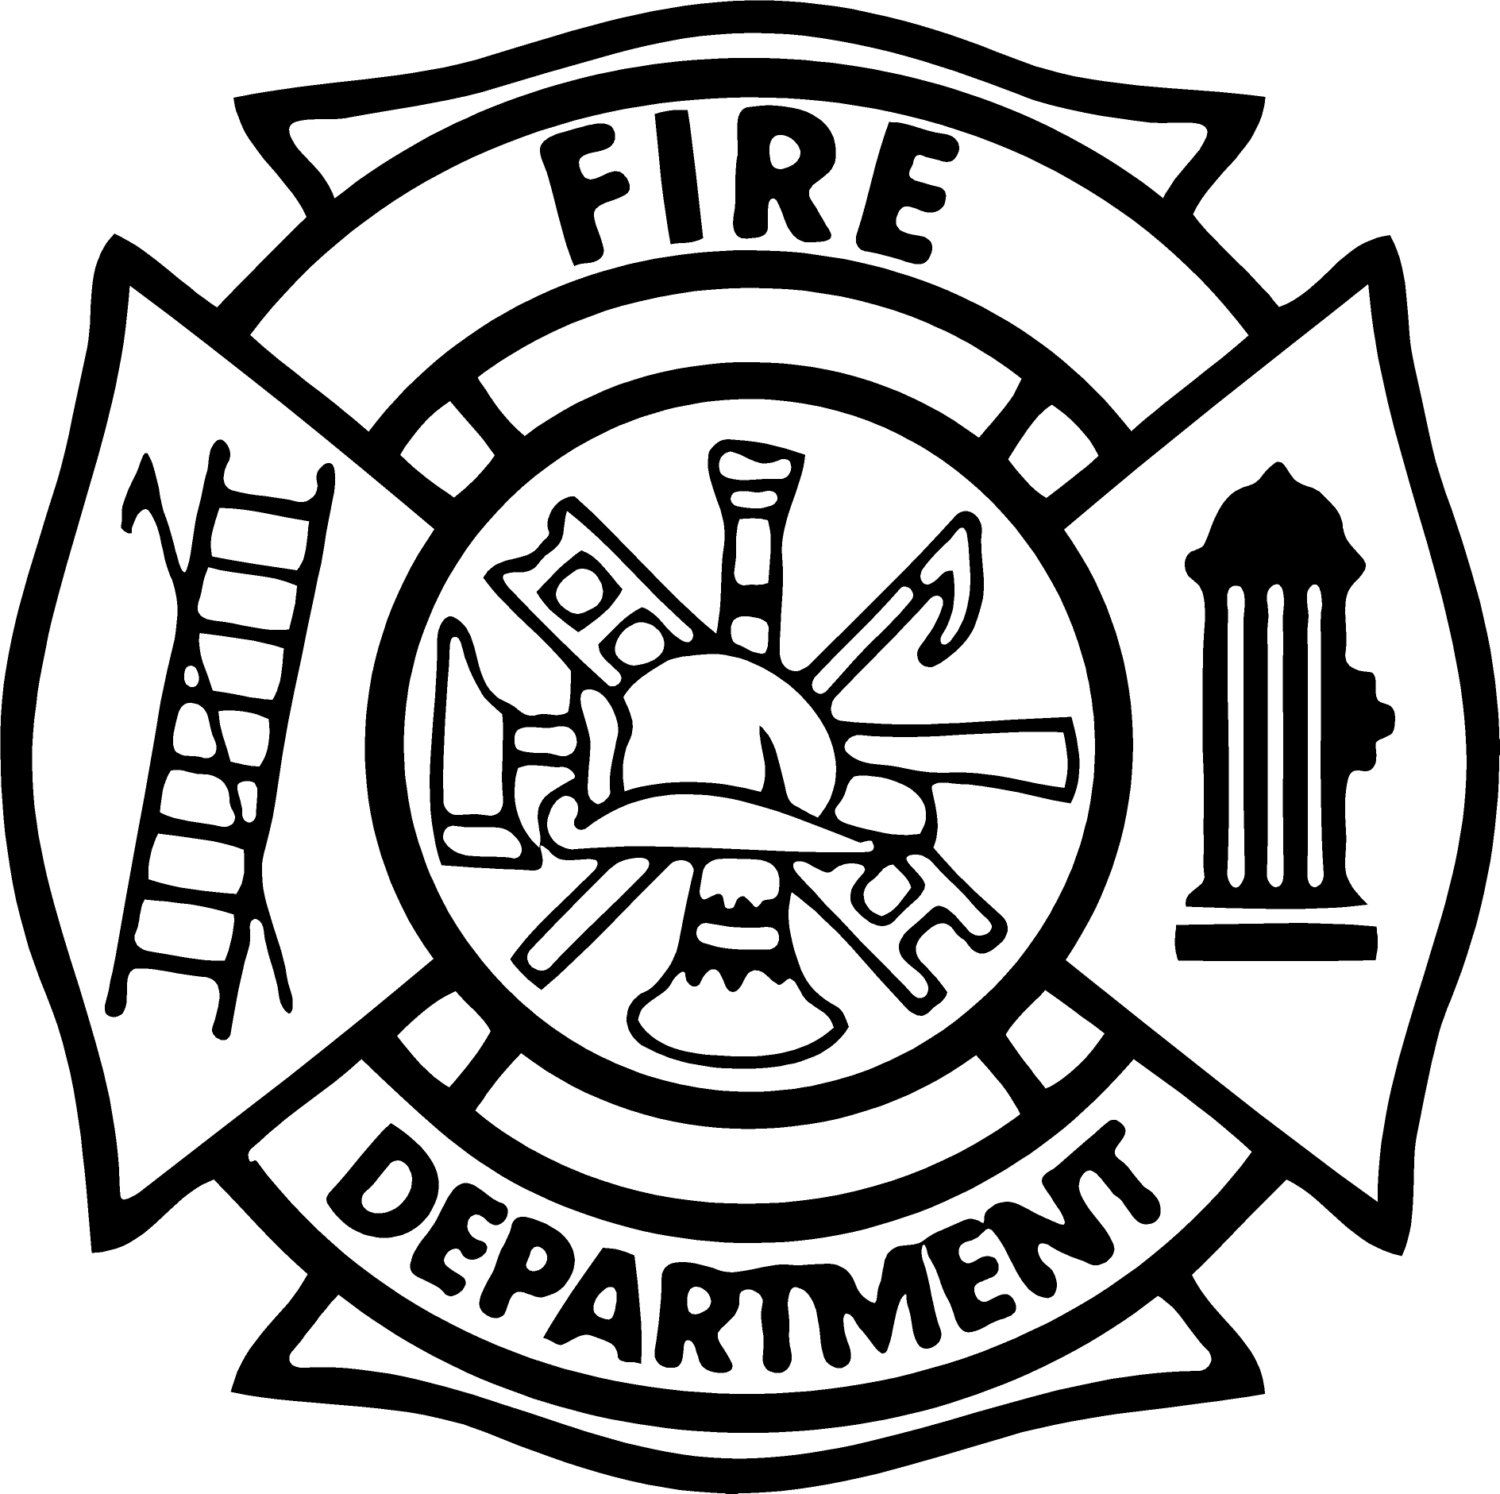 Fire Department Maltese Cross Coloring Page Part 4